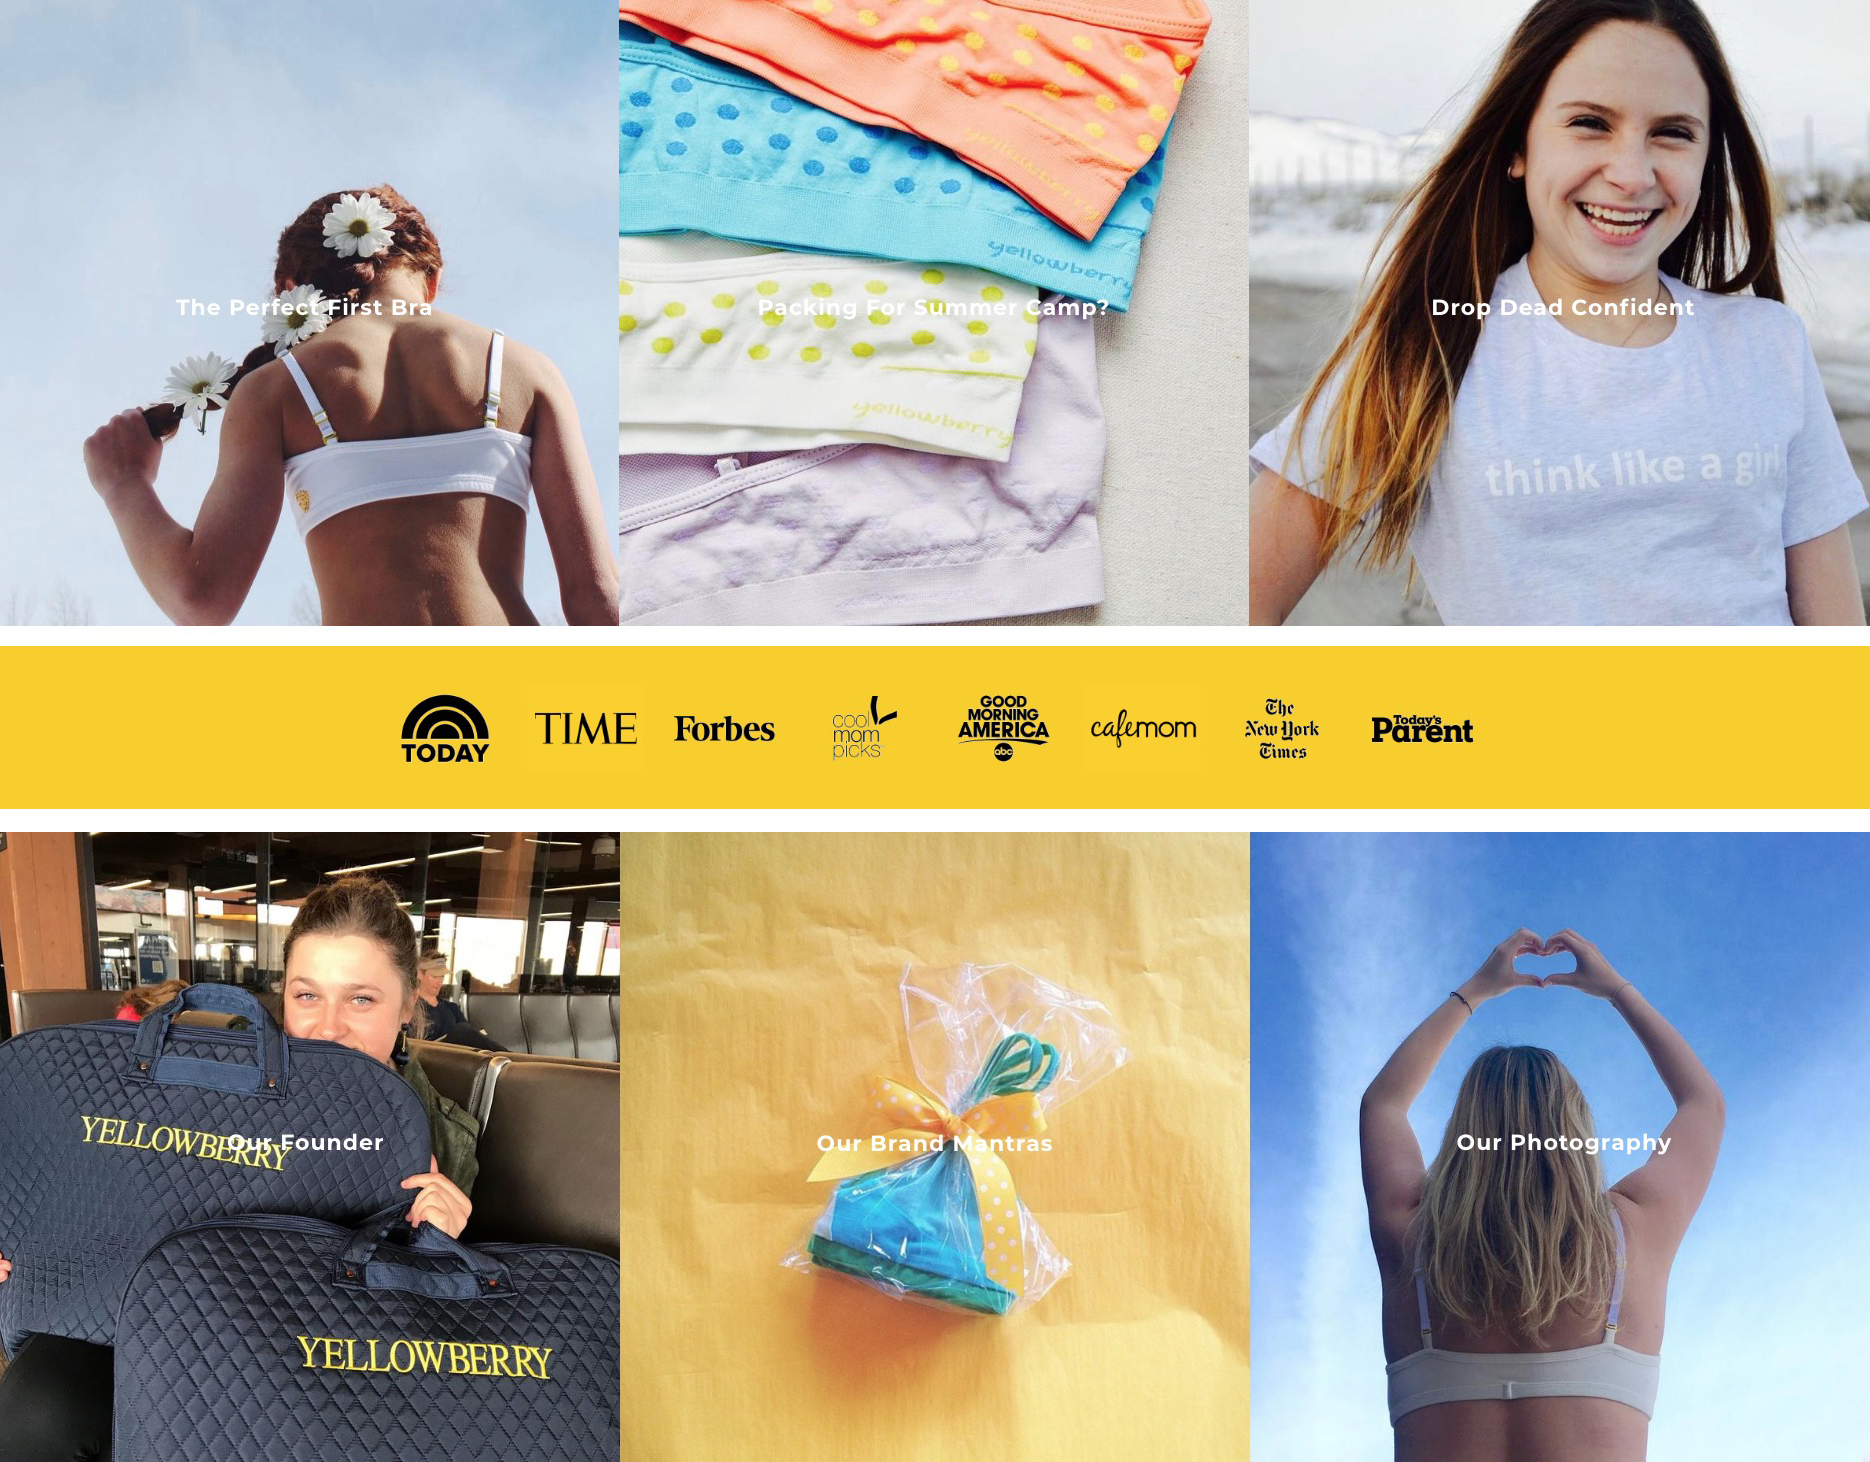 Yellowberry's mission is to be the brand that girls grow up with, and support young girls to own their ambition and ideas.